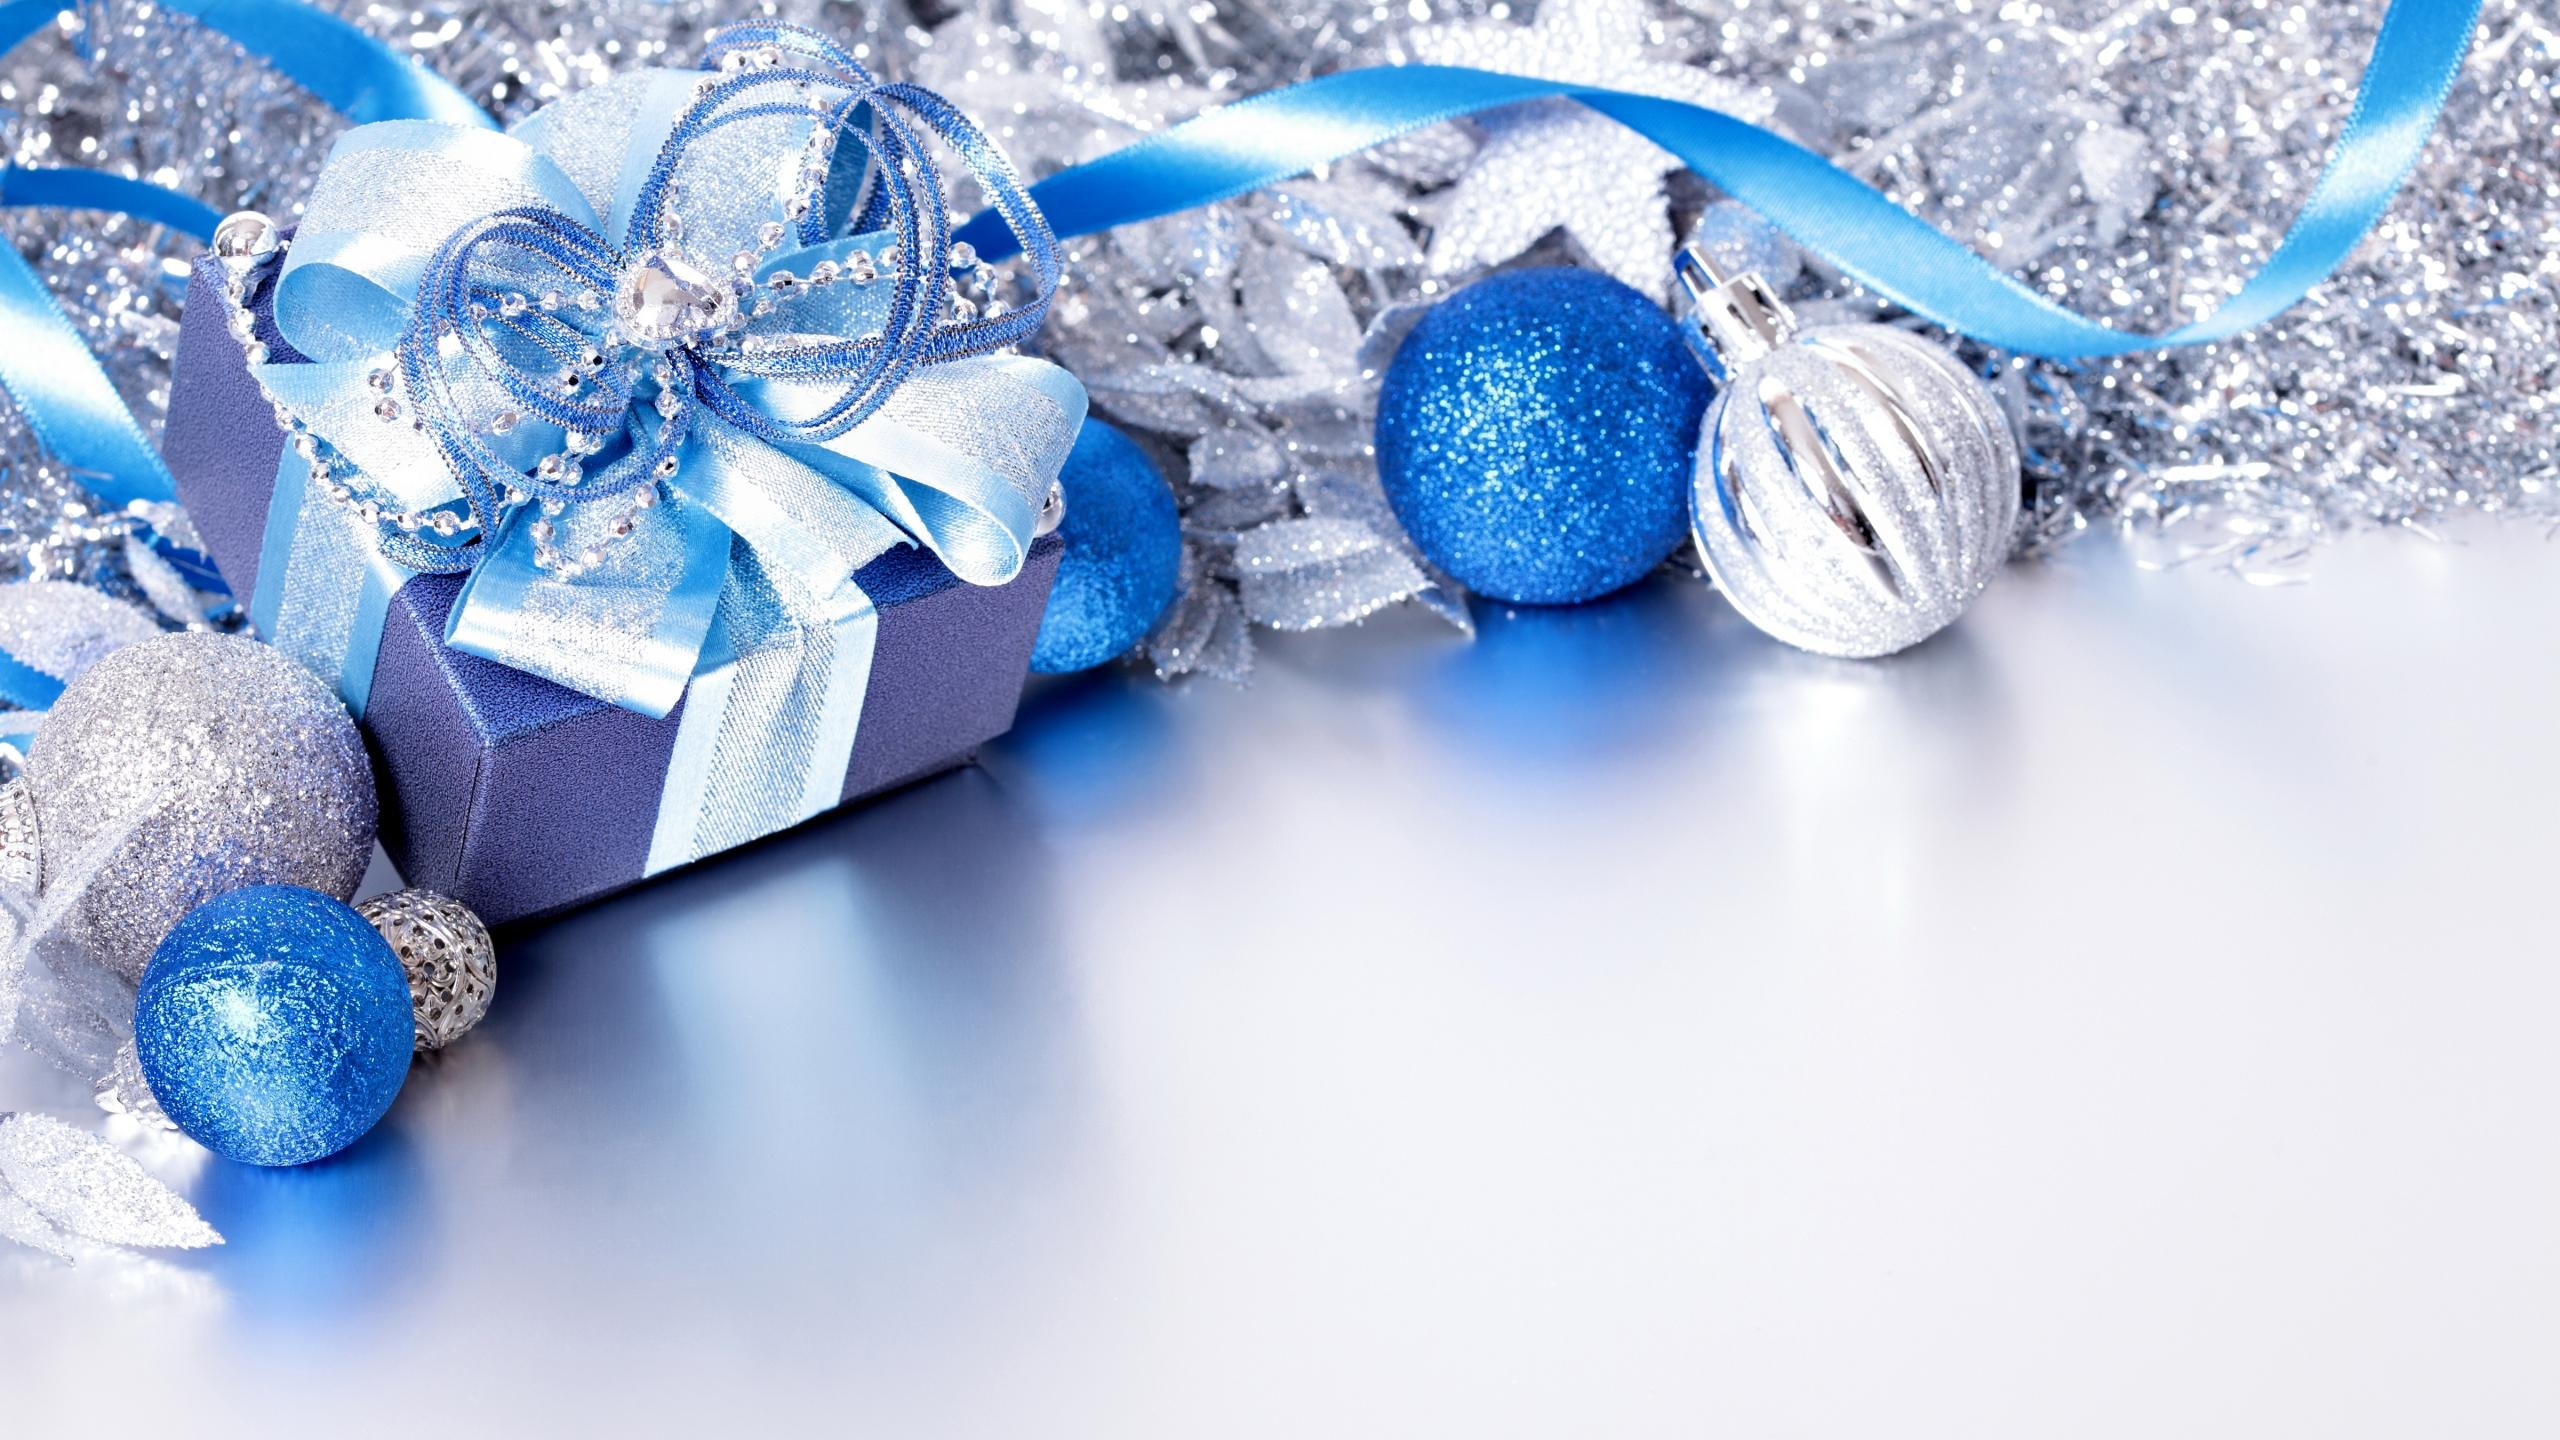 High Resolution Christmas Ornaments Decorations Hd 2560x1440 Wallpaper Id434232 For Computer